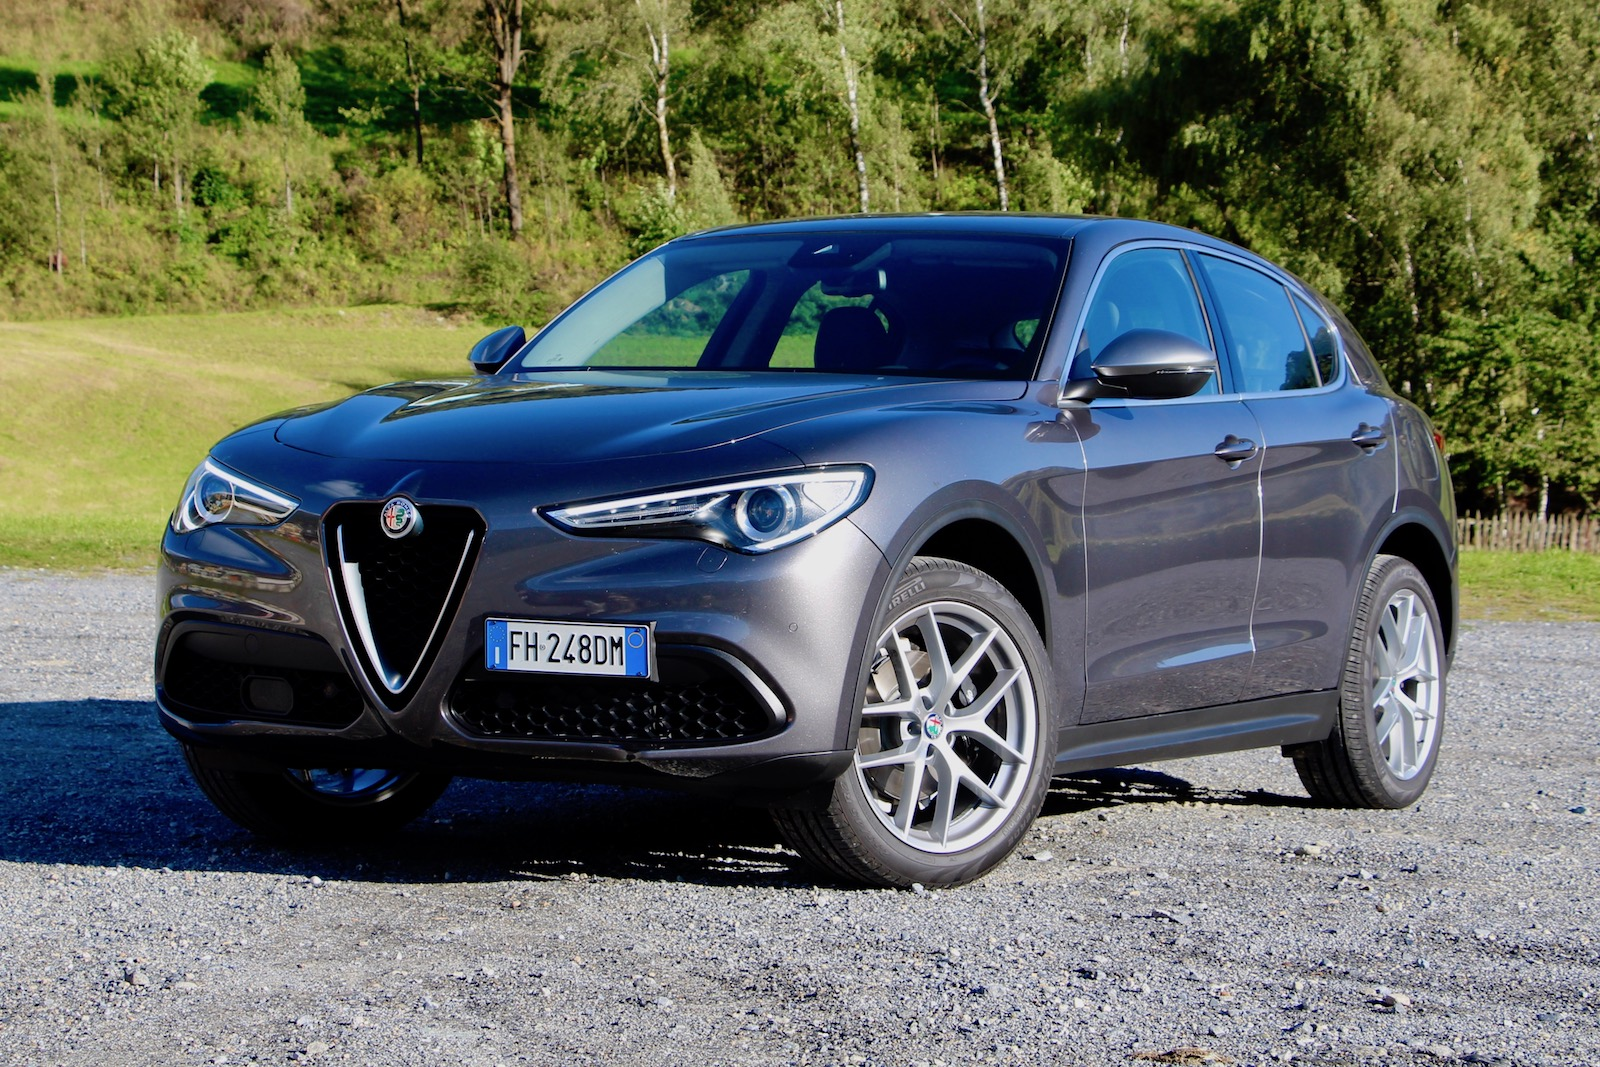 Facts About Cars >> 2018 Alfa Romeo Stelvio First Drive Review - AutoGuide.com